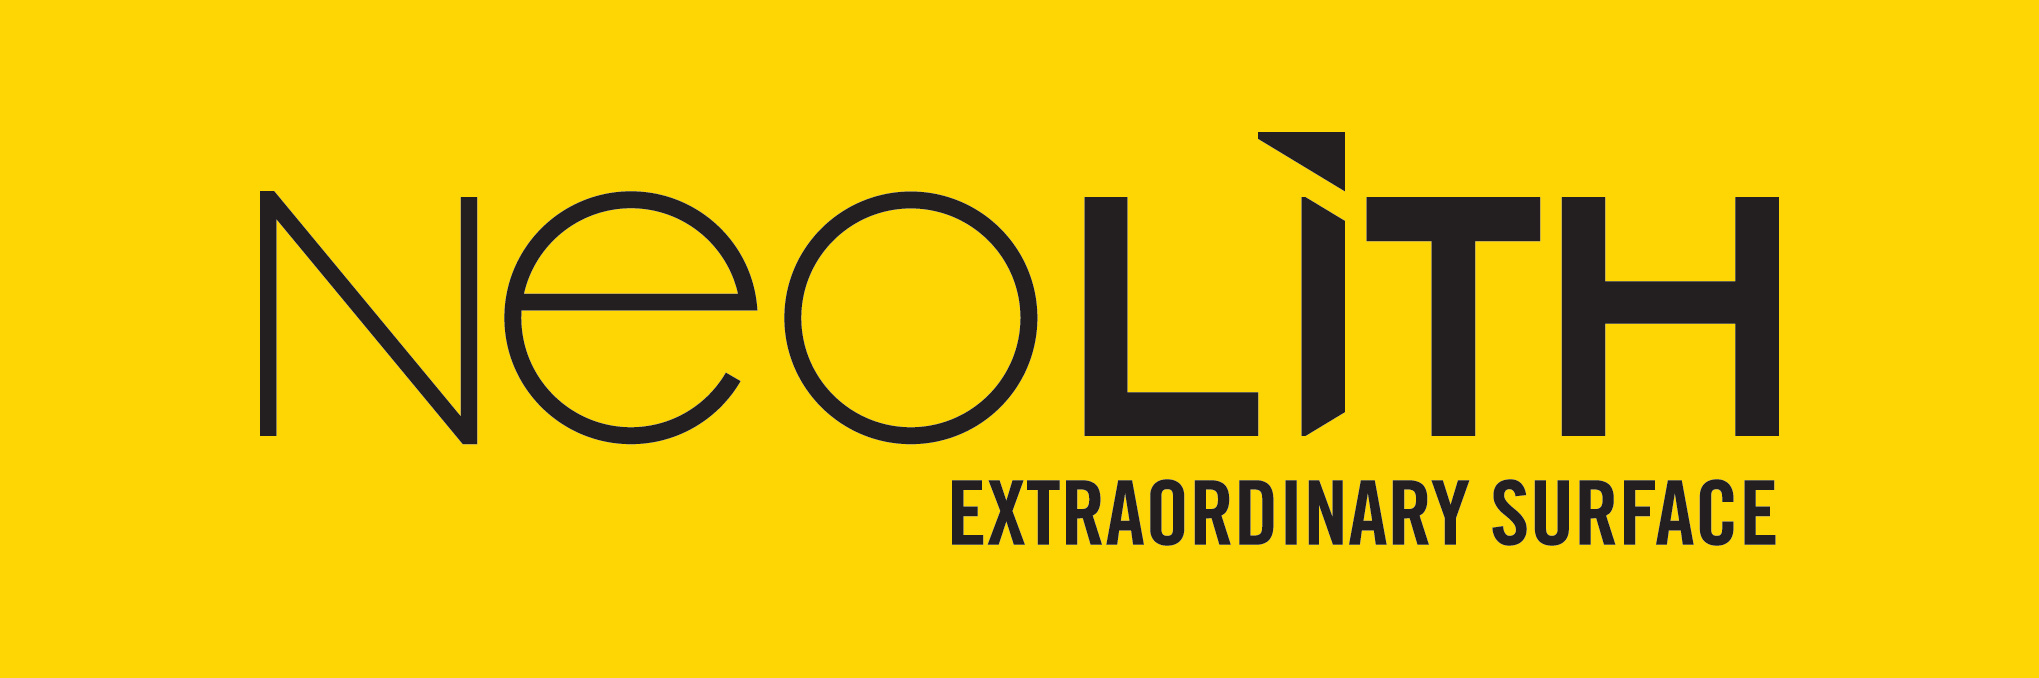 LOGO NEOLITH EXTRAORDINARY SURFACE_ FONDO AMARILLO